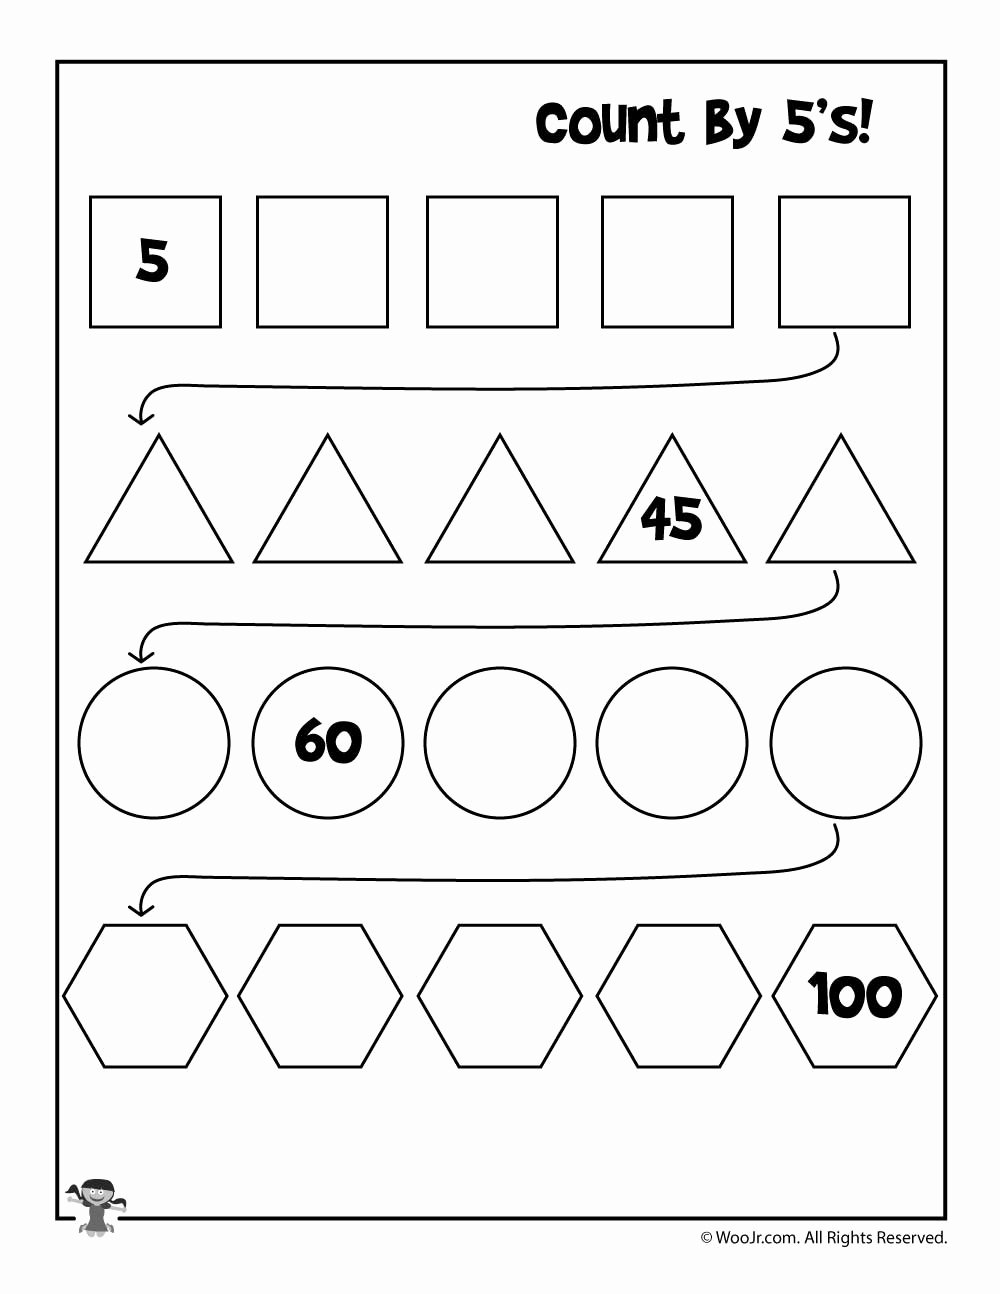 March Worksheets for Preschoolers Inspirational Worksheet Skip Counting Worksheets 5s Counting Worksheets